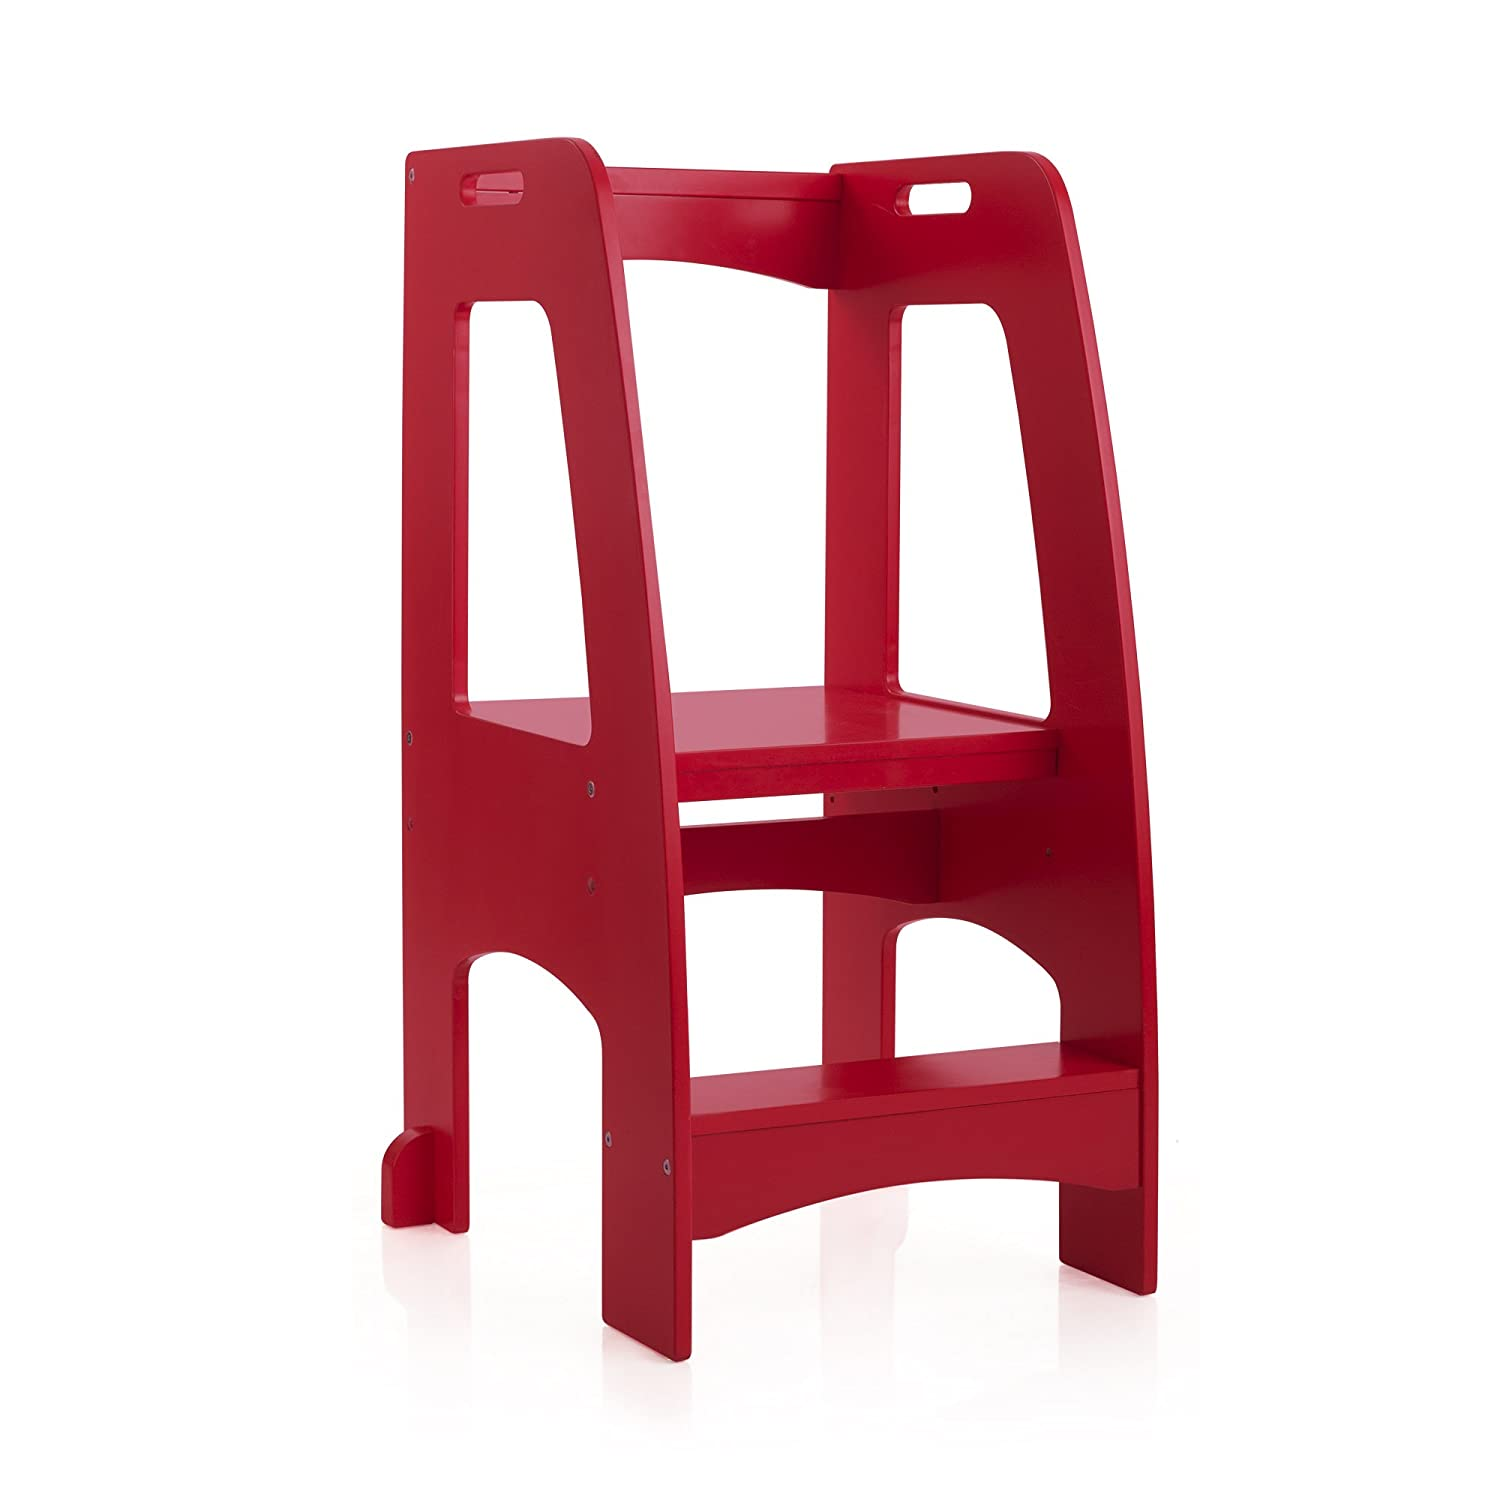 Guidecraft Kitchen Helper Tower Step-Up - Black: Wooden, Adjustable Counter Height, Learning Step Stool with Safety Rails for Little Children, Kids' Furniture Kids' Furniture